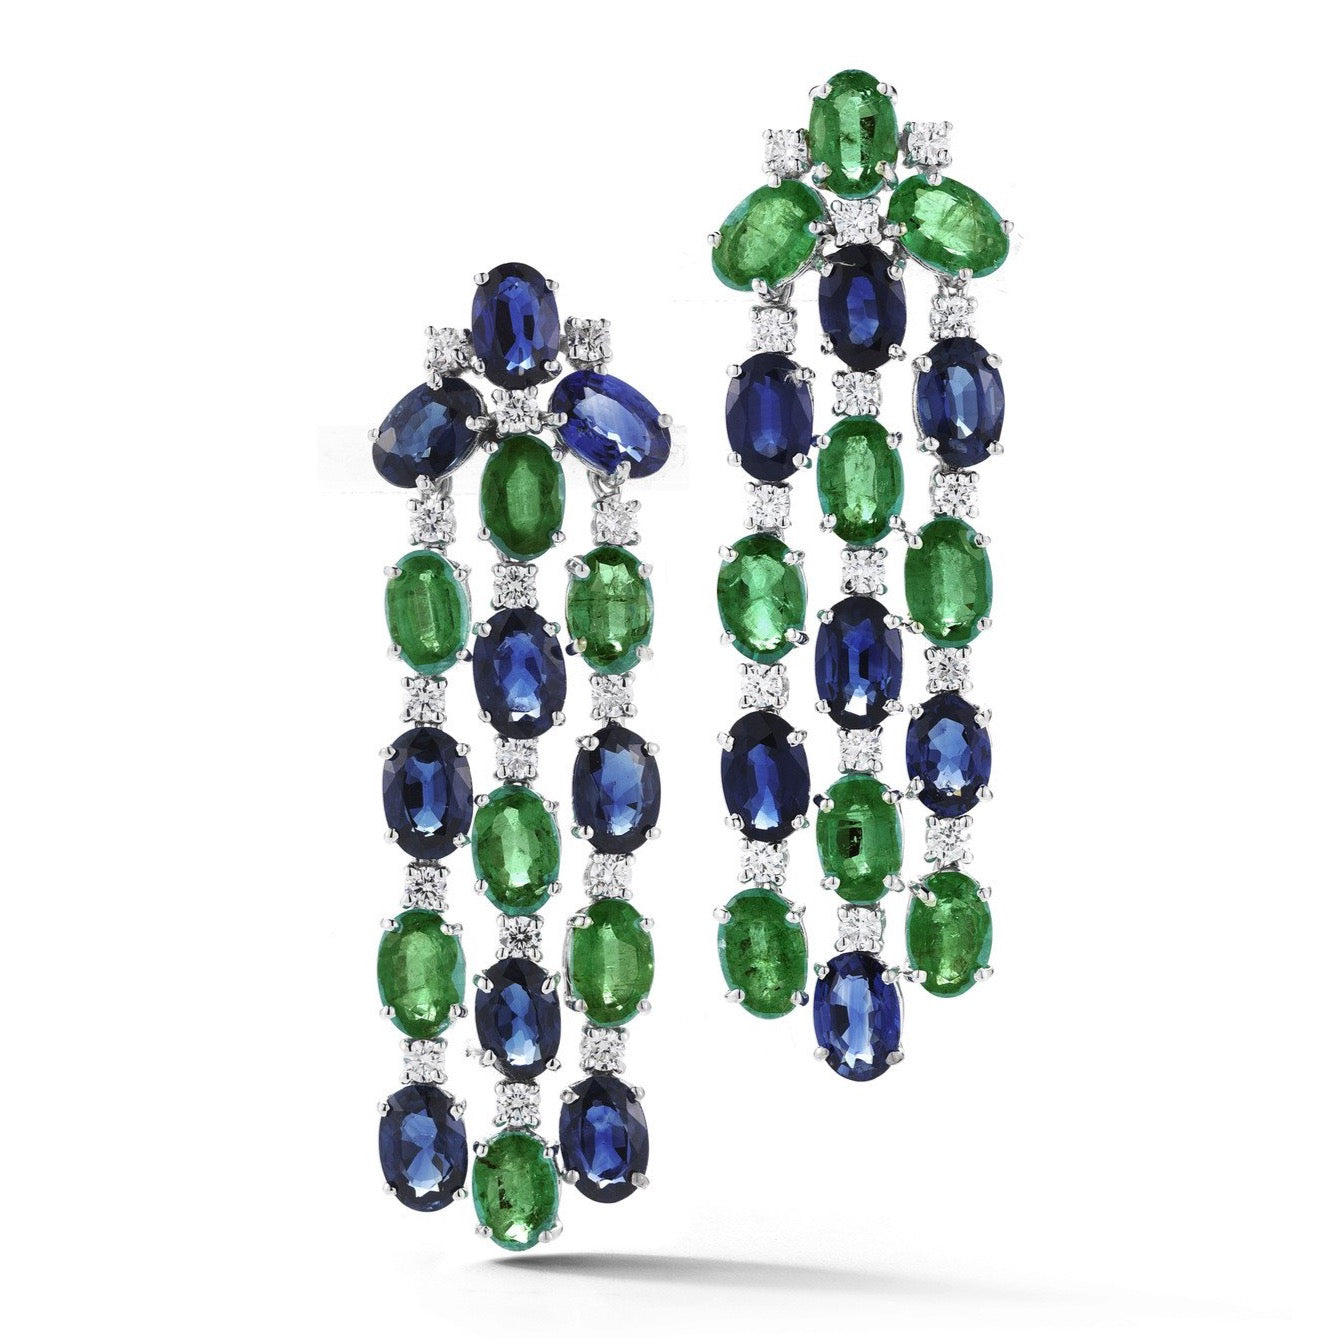 "A & Furst ""Nightlife"" Chandelier Earrings with Emeralds, Sapphires and Diamonds, 18k White Gold."